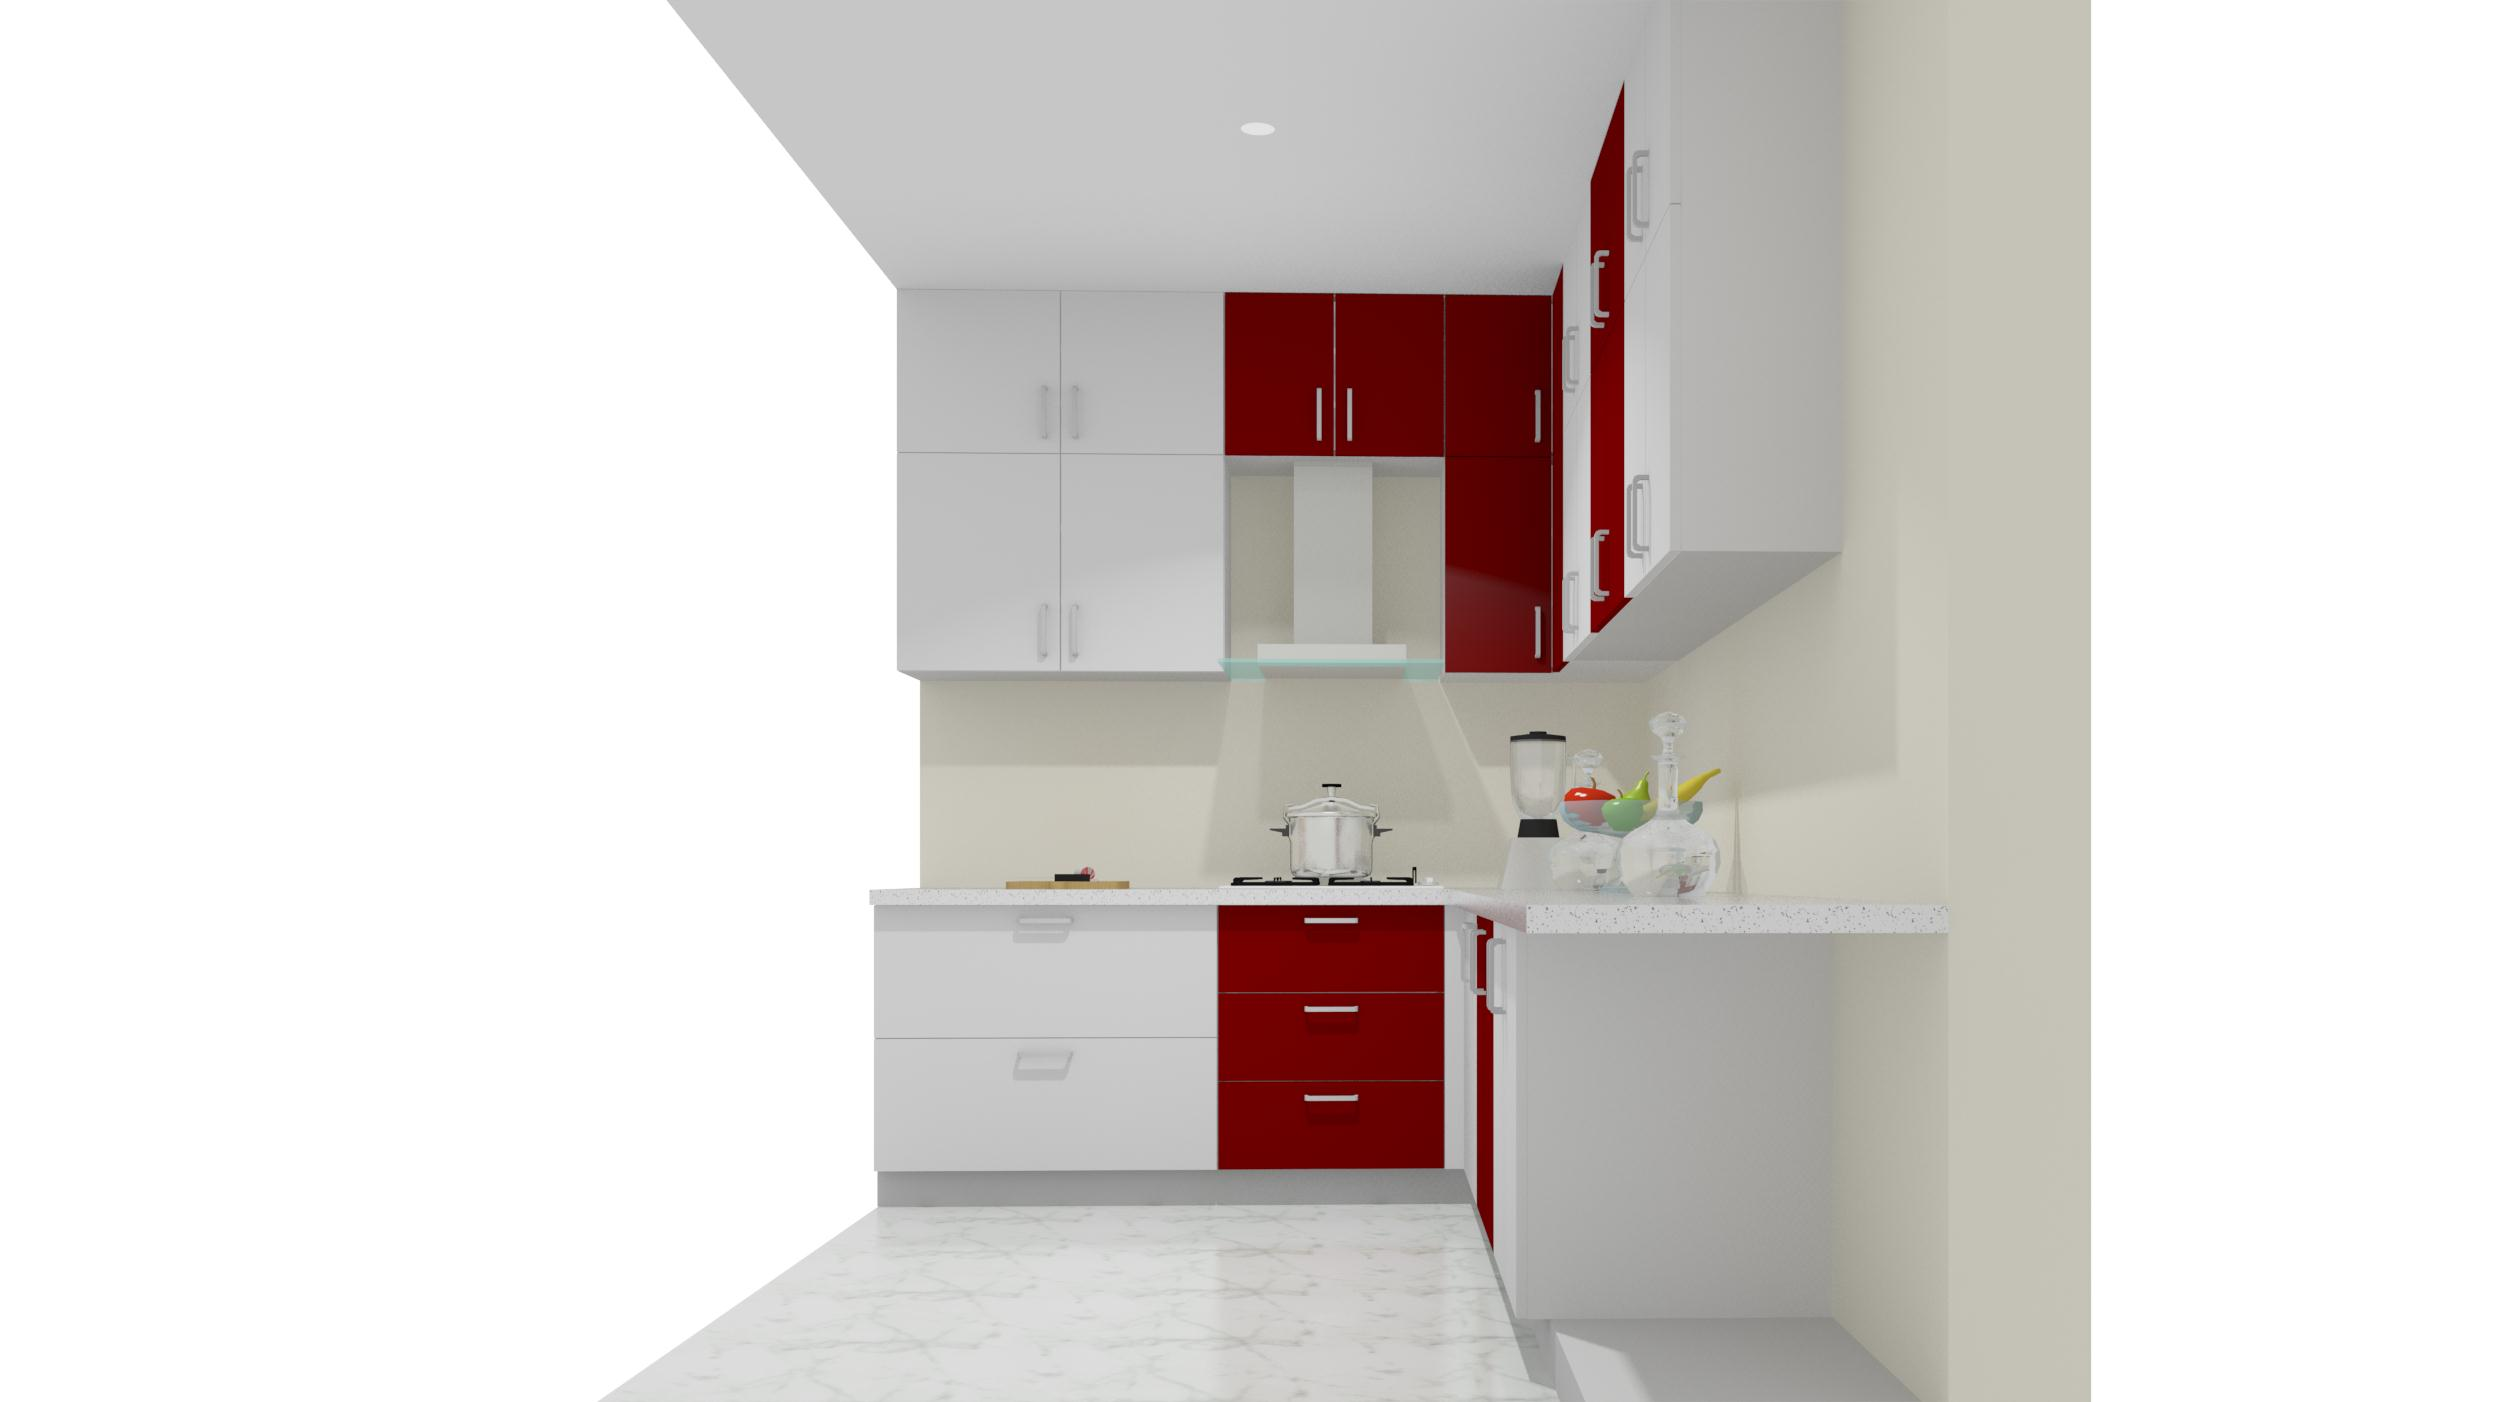 Modular Kitchens And Wardrobes by Triad Interio - Exposure